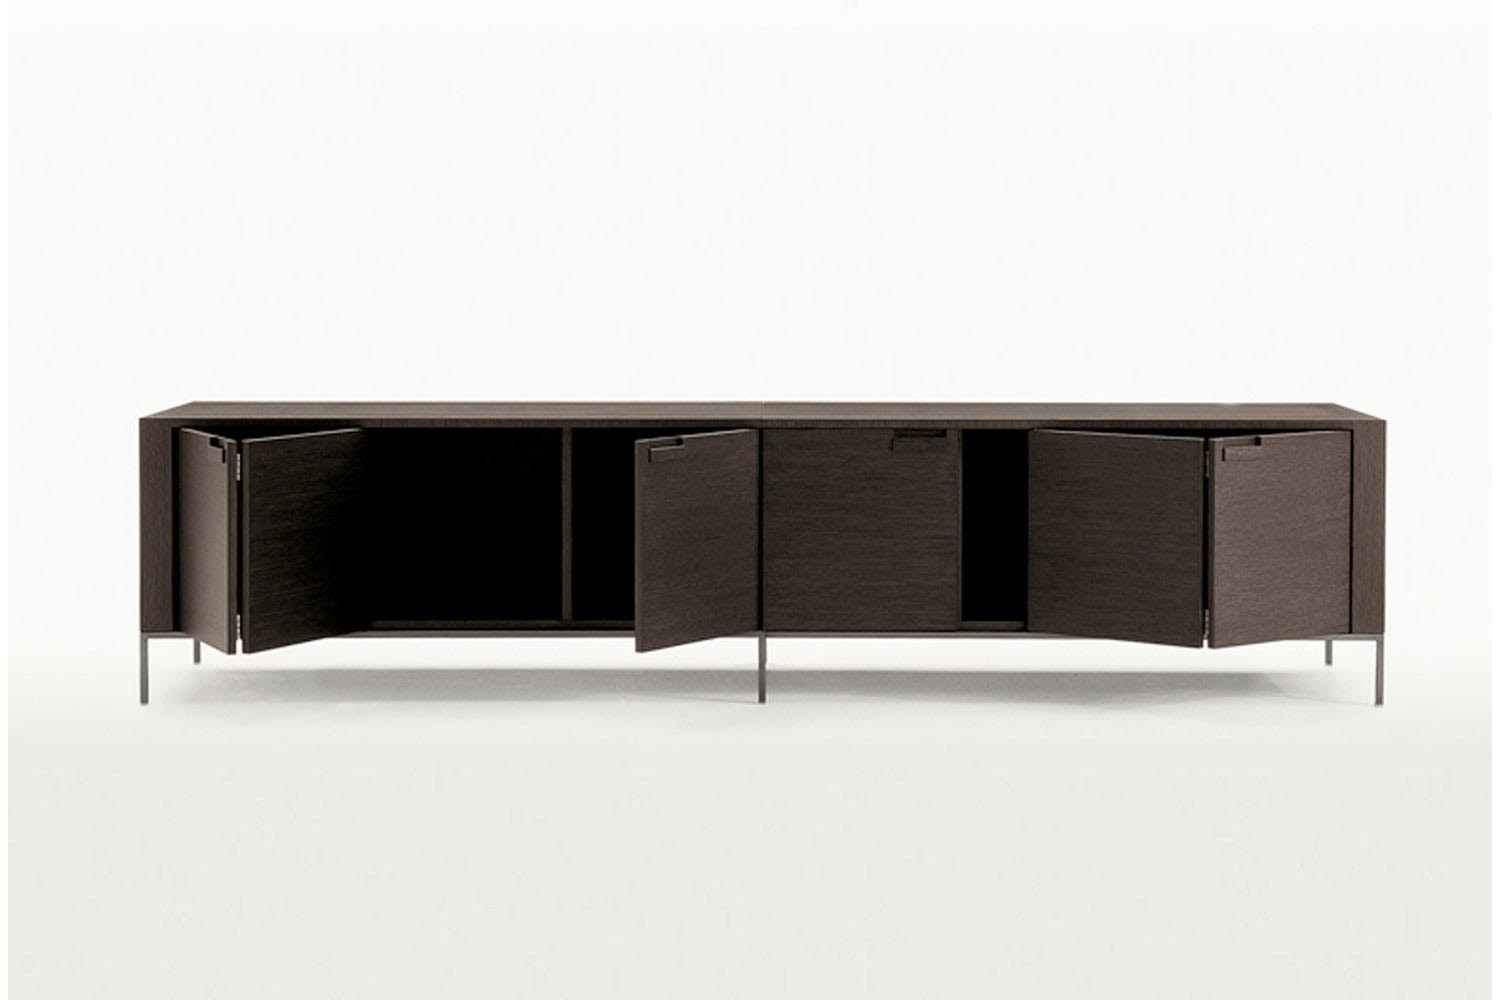 Titanes Chest of Drawers & Storage Units by Antonio Citterio for Maxalto